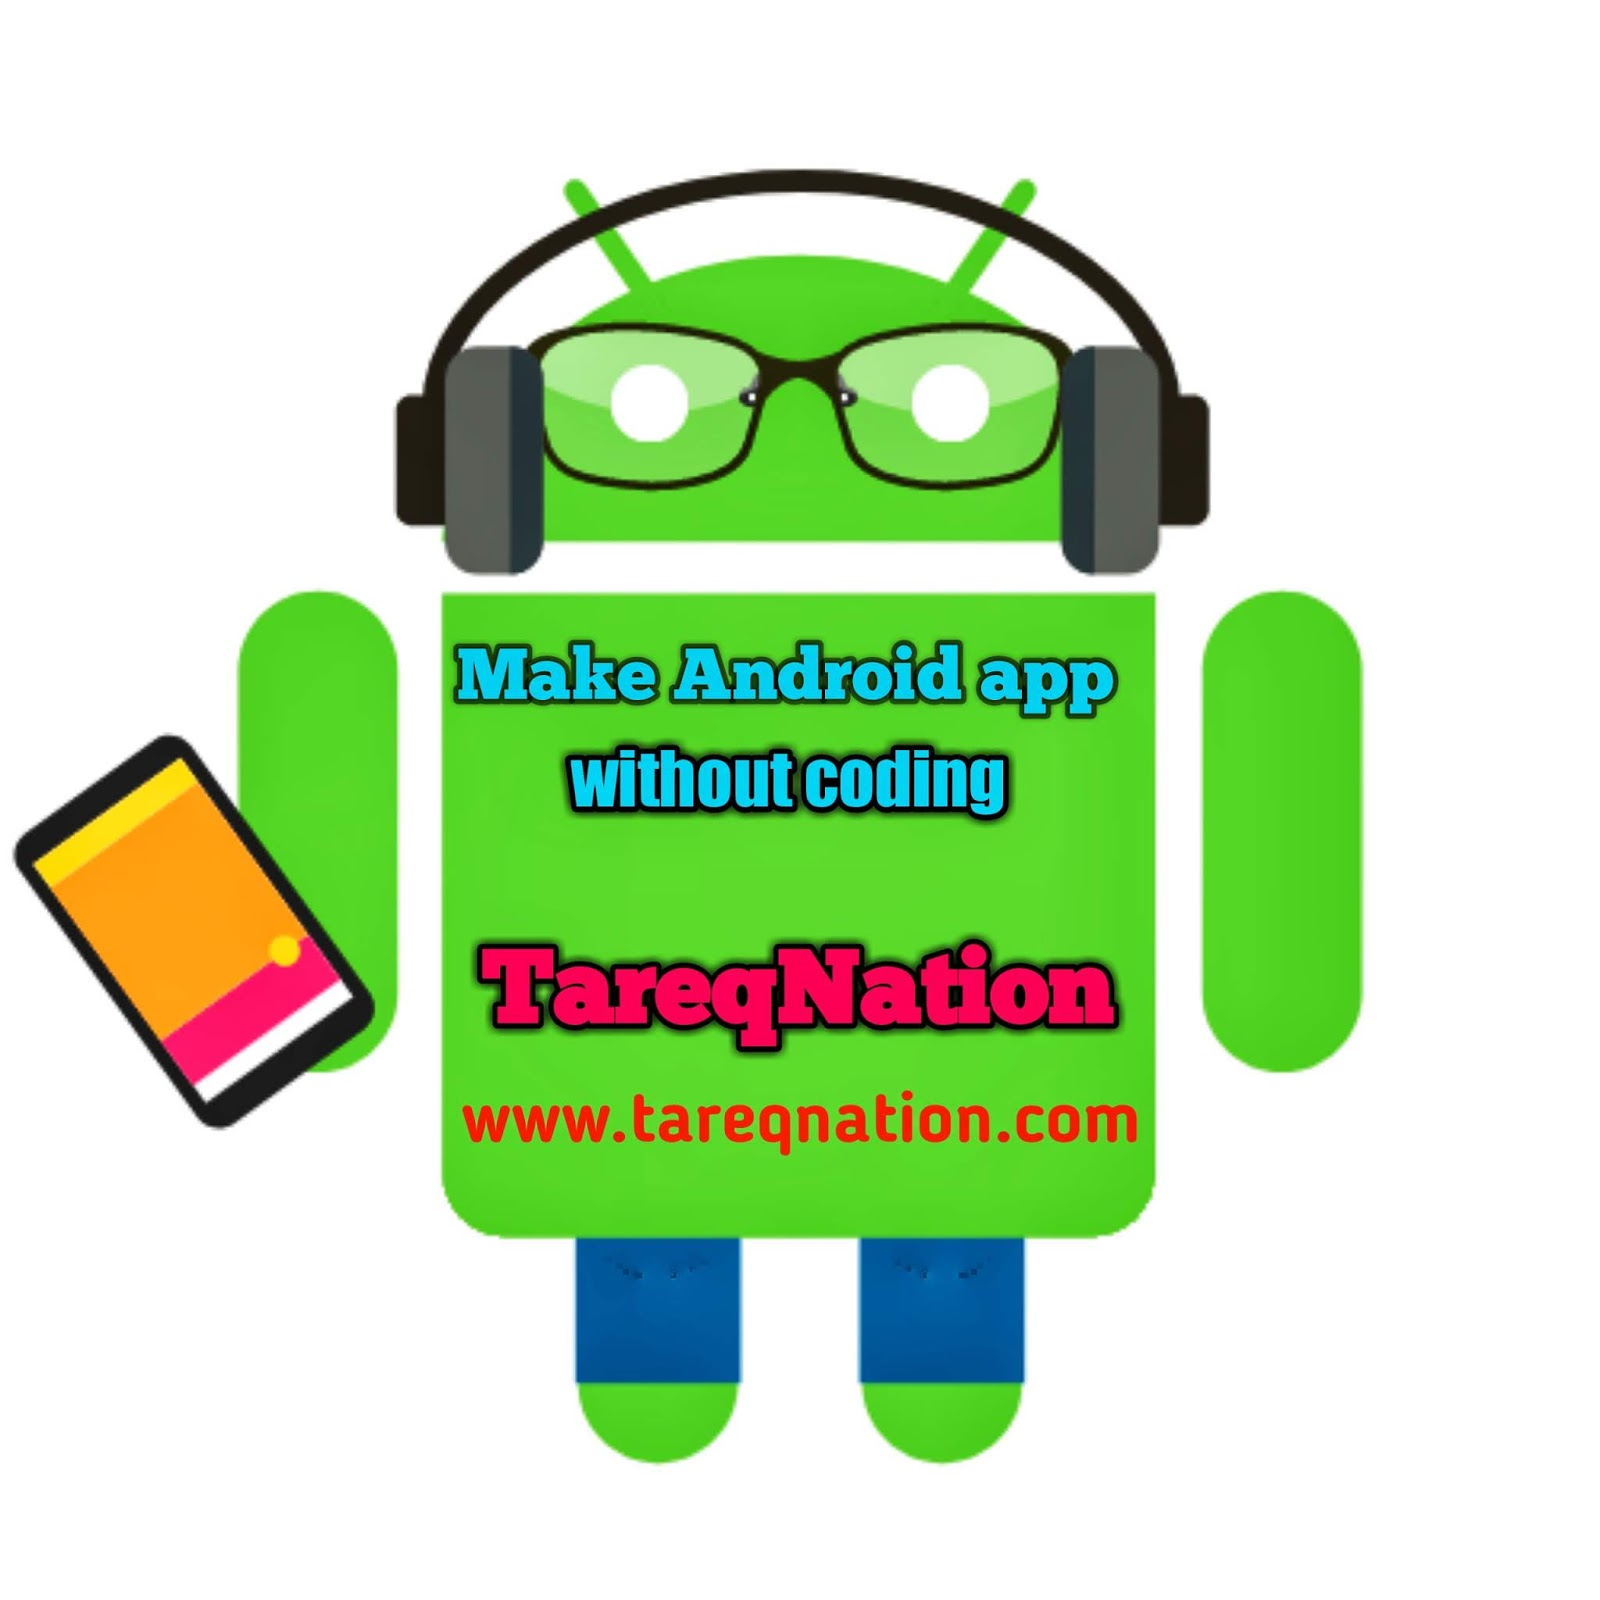 Create Android Apps Without Coding - TareqNation